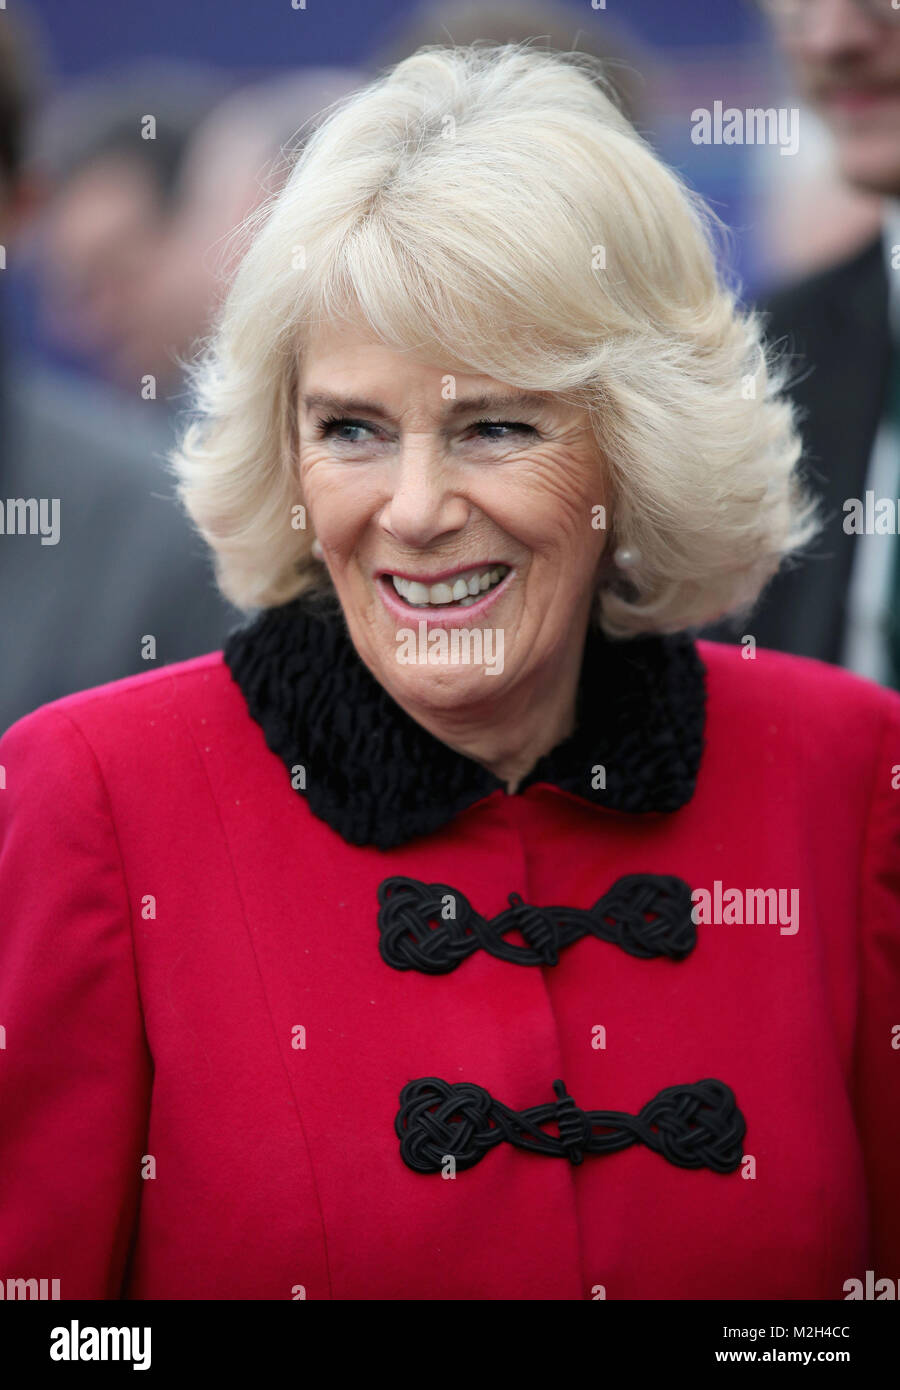 The Duchess of Cornwall during the official opening of The National Grid's London Power Tunnels project, a new - Stock Image